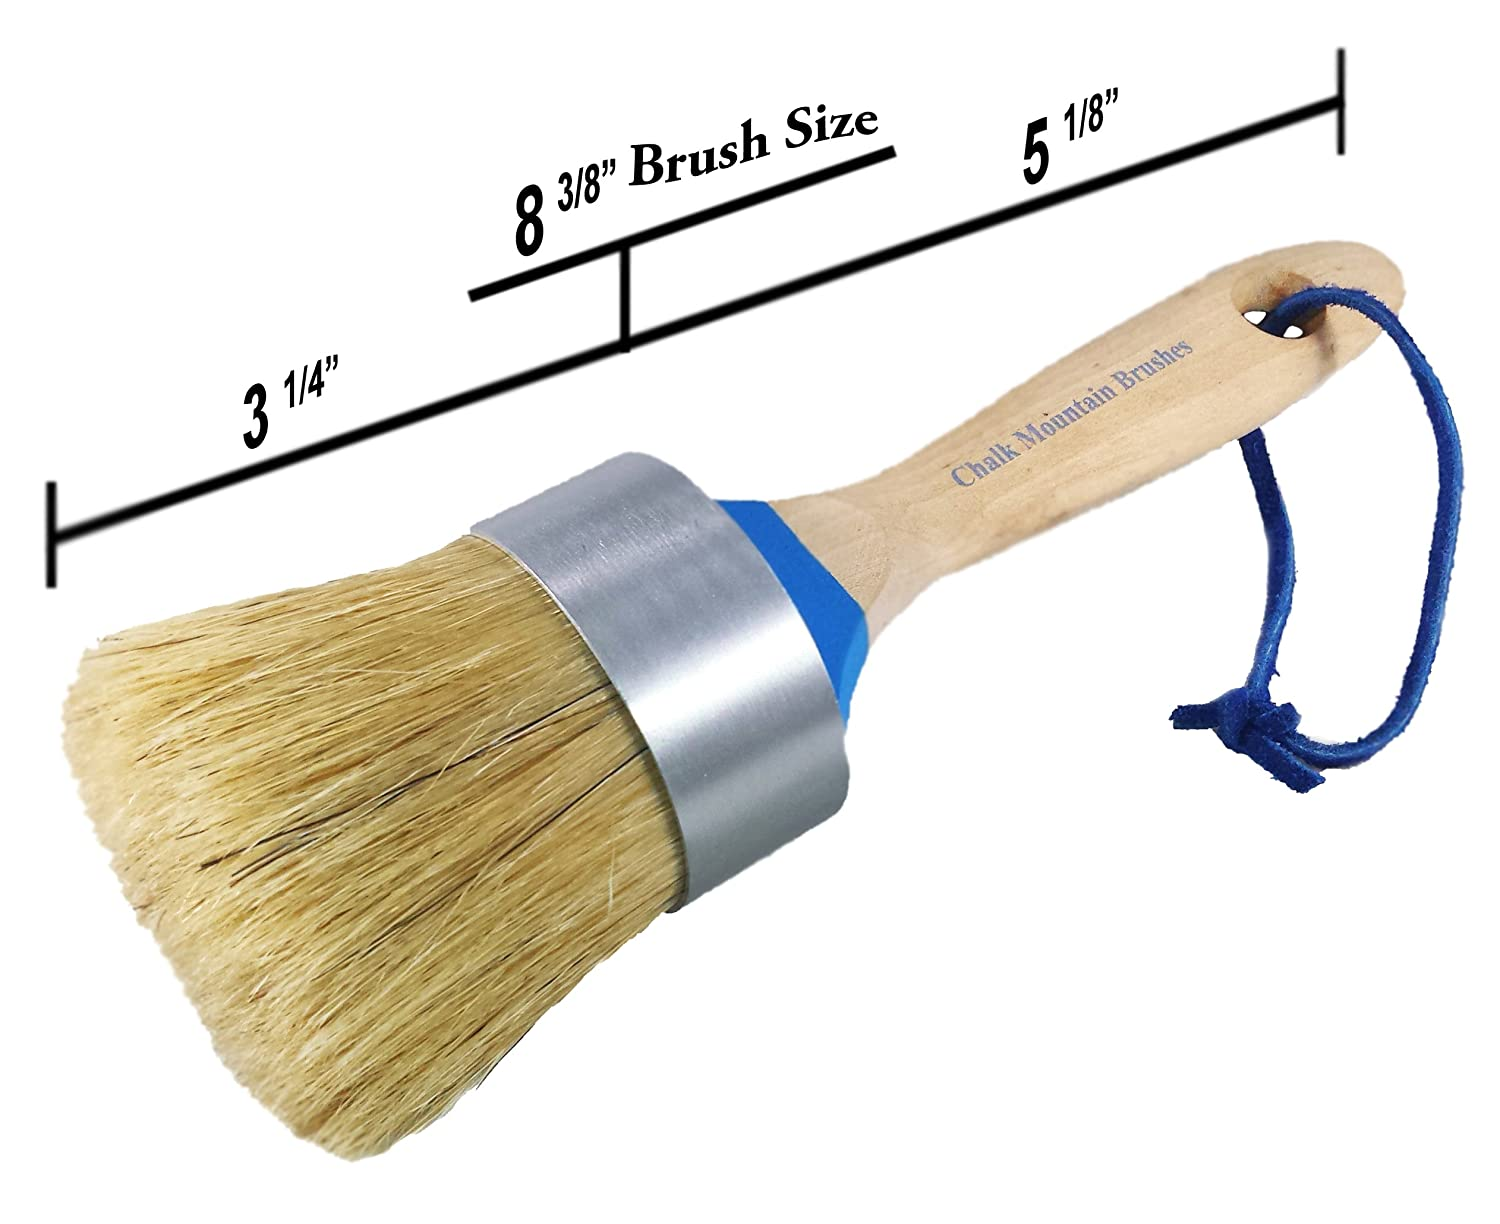 Chalk Mountain Brushes-LARGE MAXIMUM 2-in-1 Chalk Furniture Paint Boar Hair Brush. Great for Large Projects. Aluminum Ferrule to ensure NO Rusting, Easy to hang/clean with Blue leather rope.